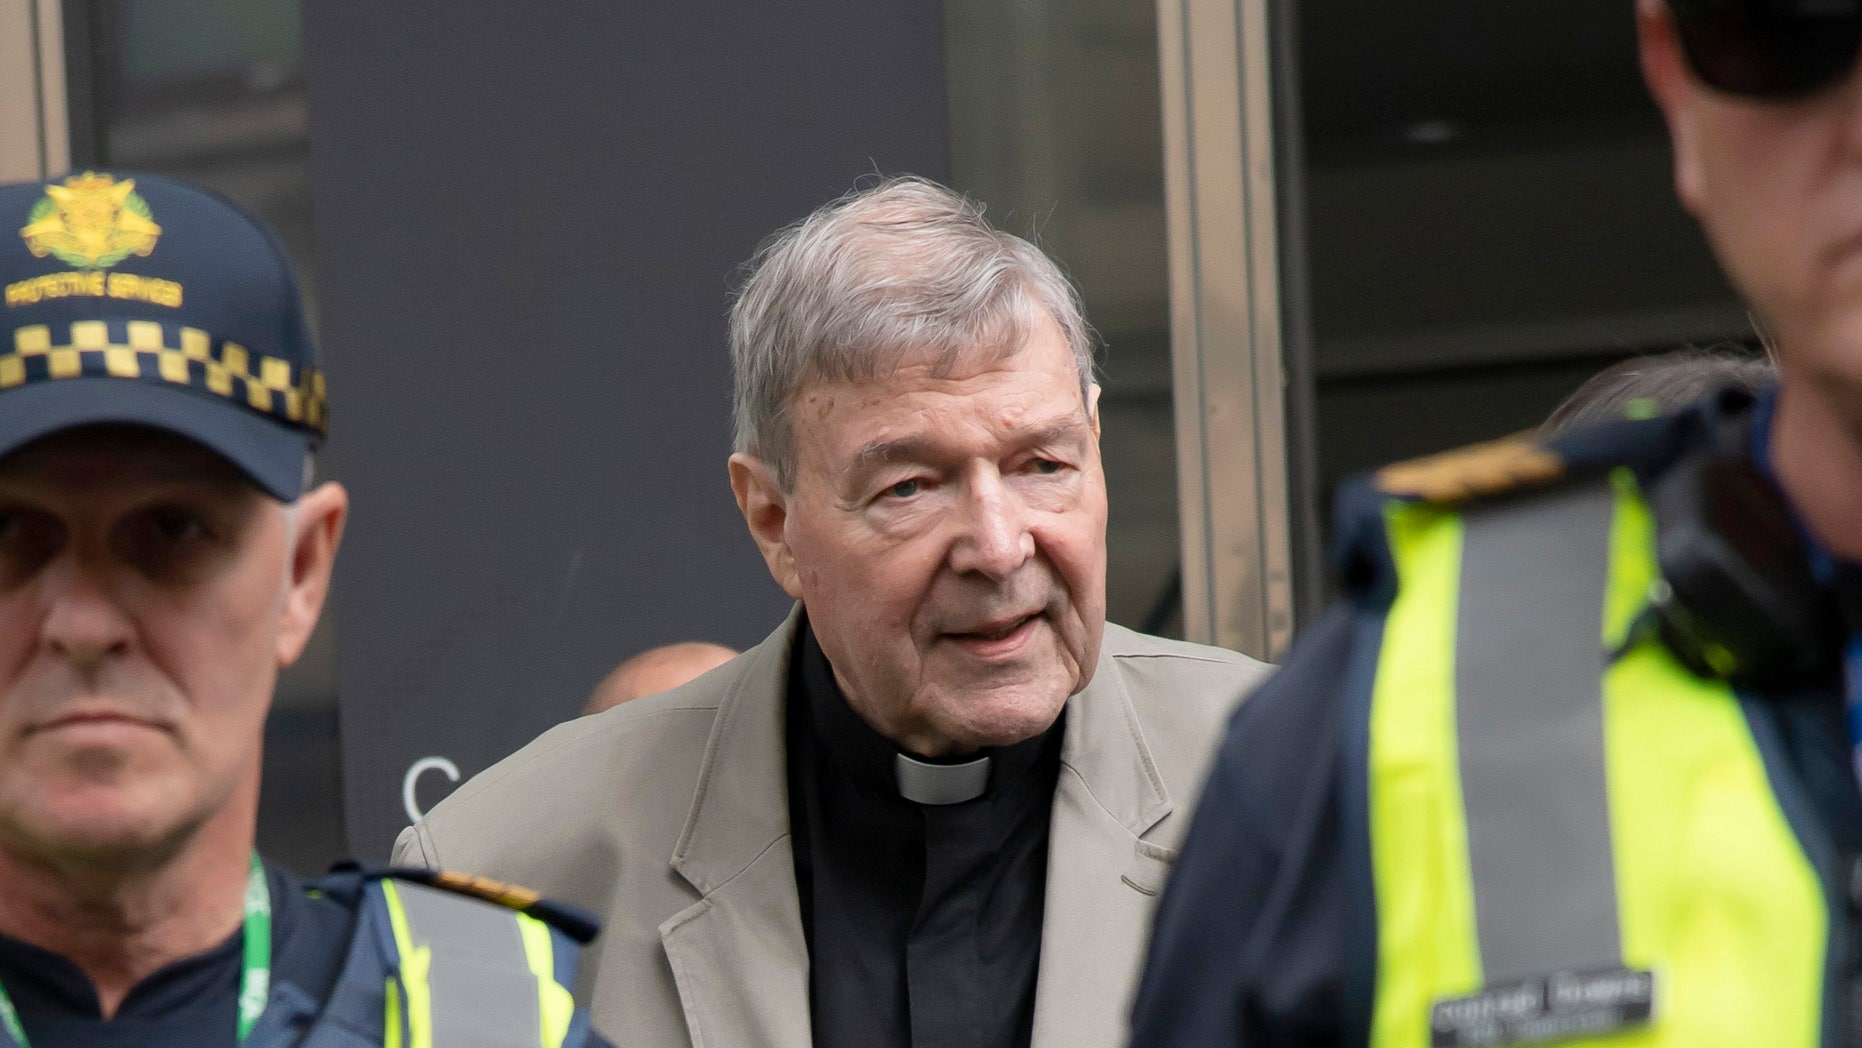 Australian Cardinal – George Pell Given 6 Years Prison Sentence